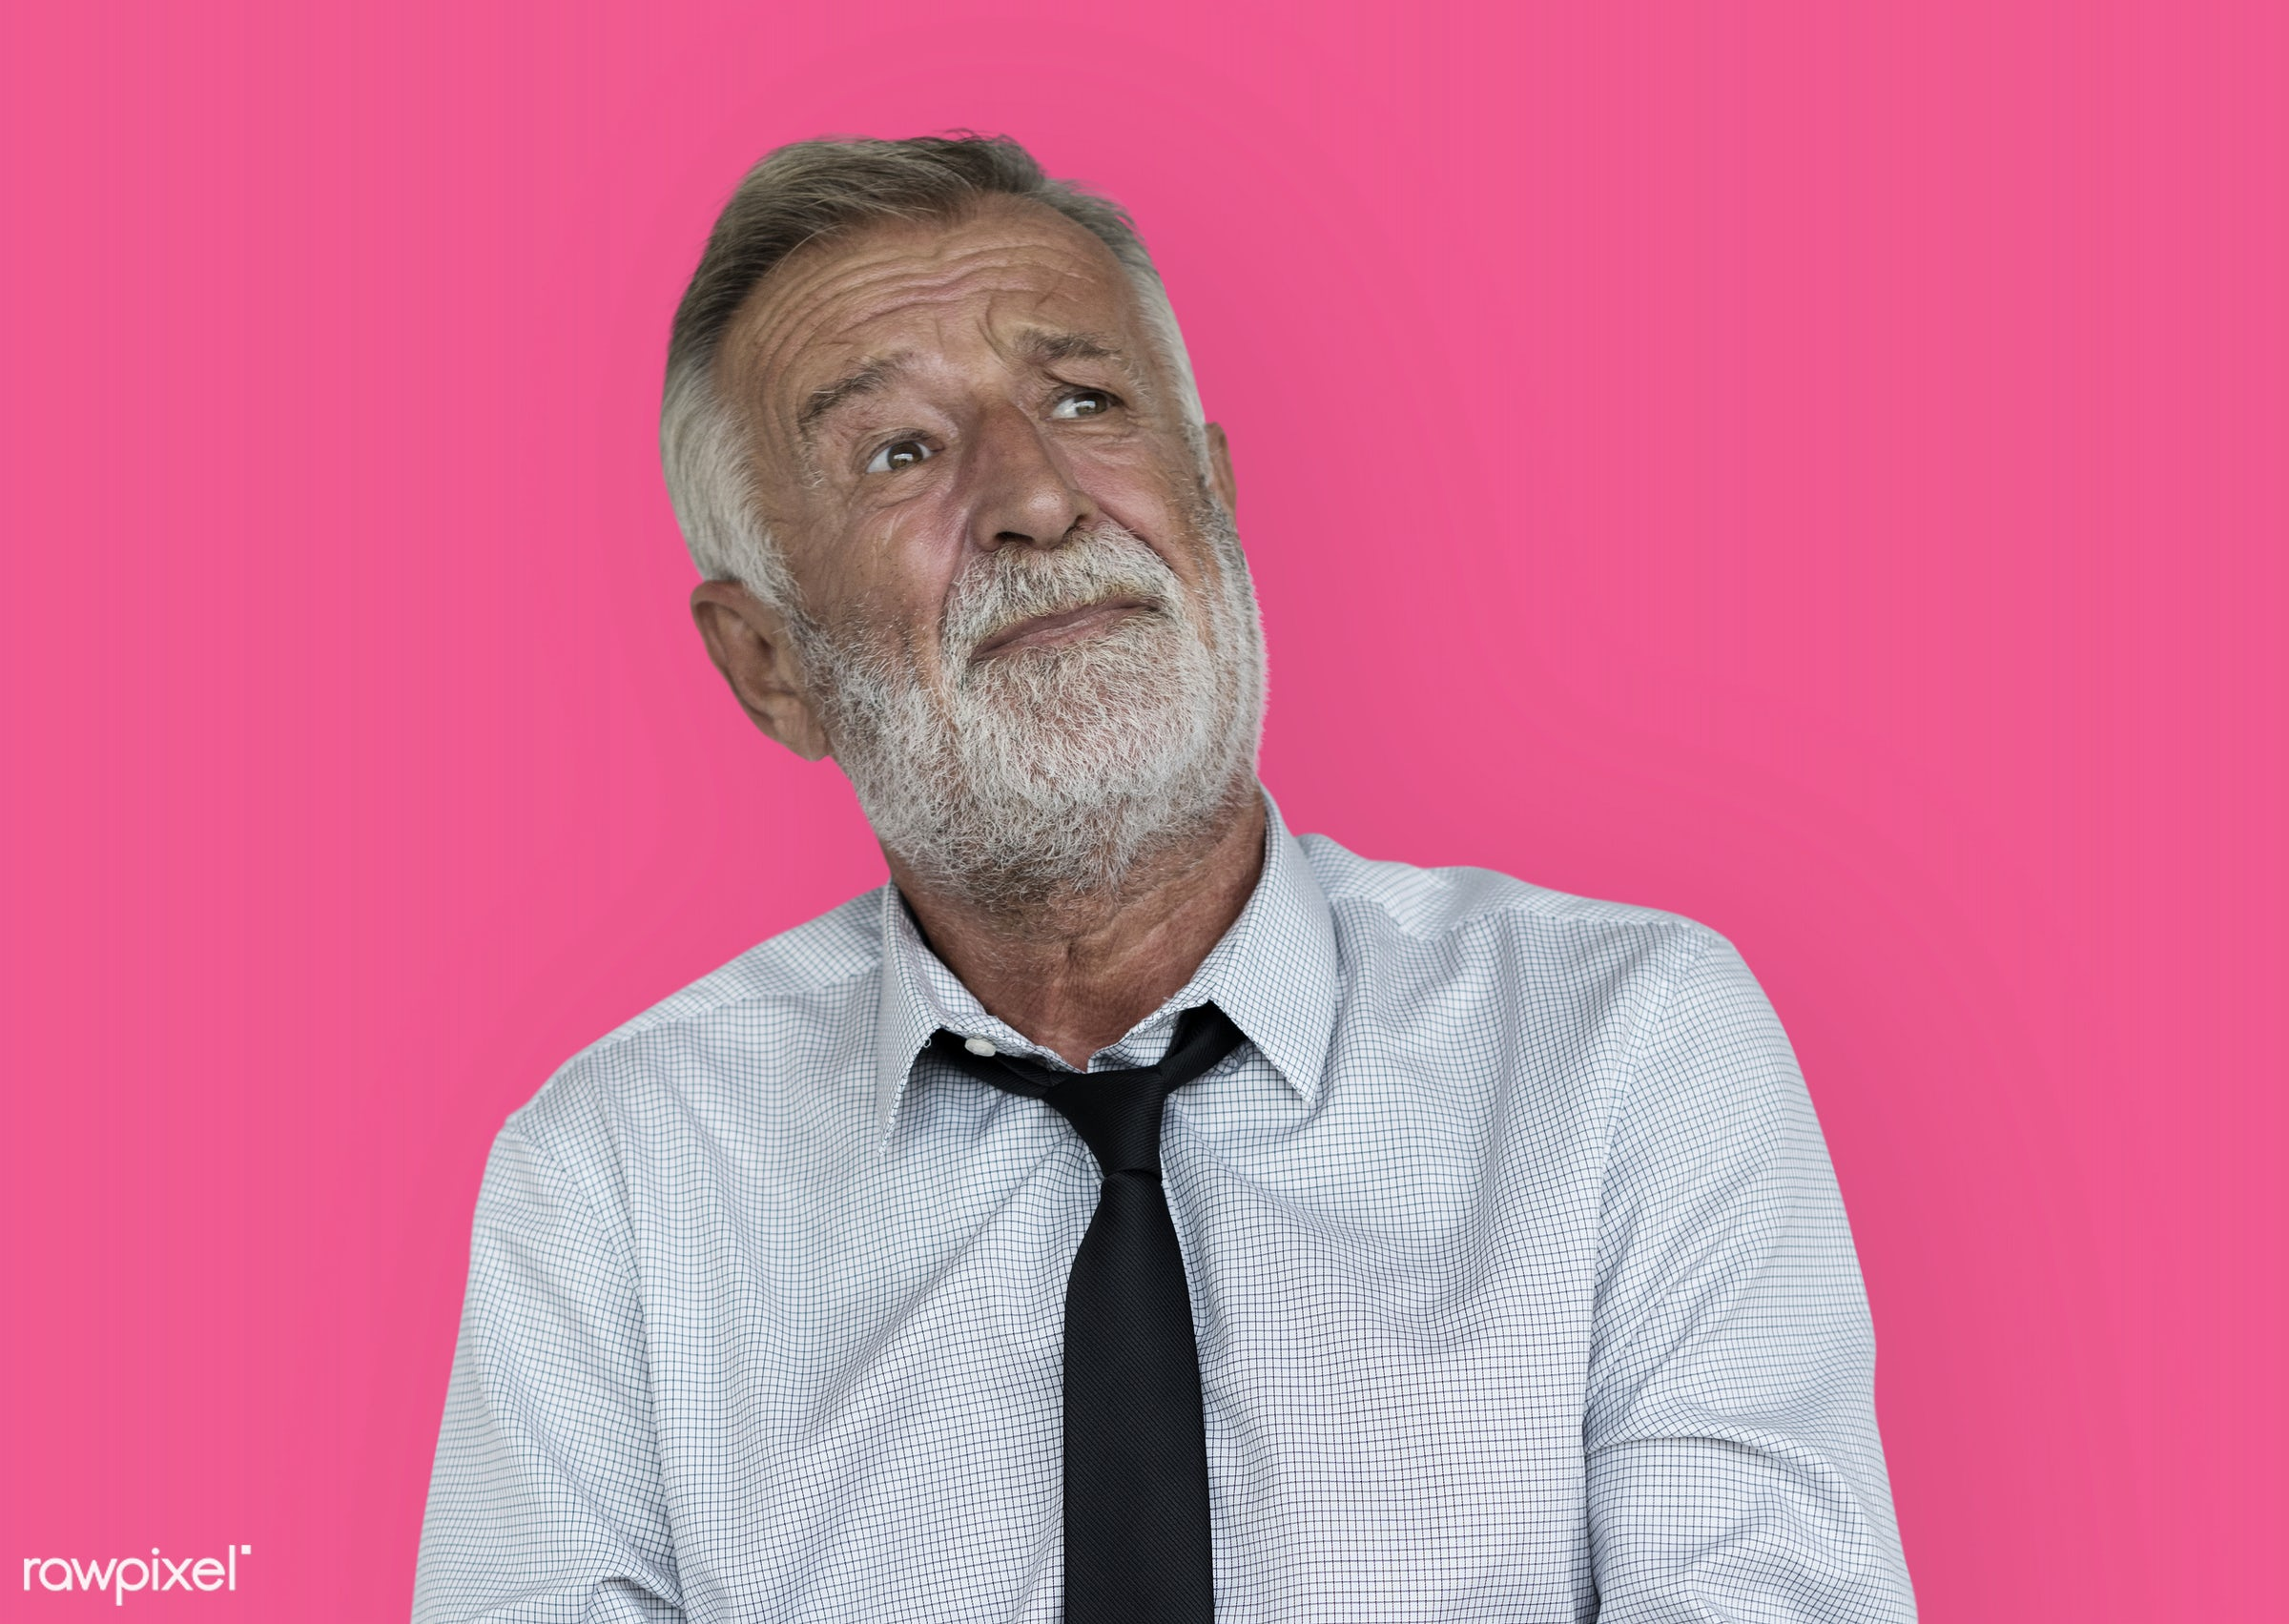 expression, intelligent, studio, face, person, vibrant, people, business, caucasian, modern, looking, concerned, pink,...